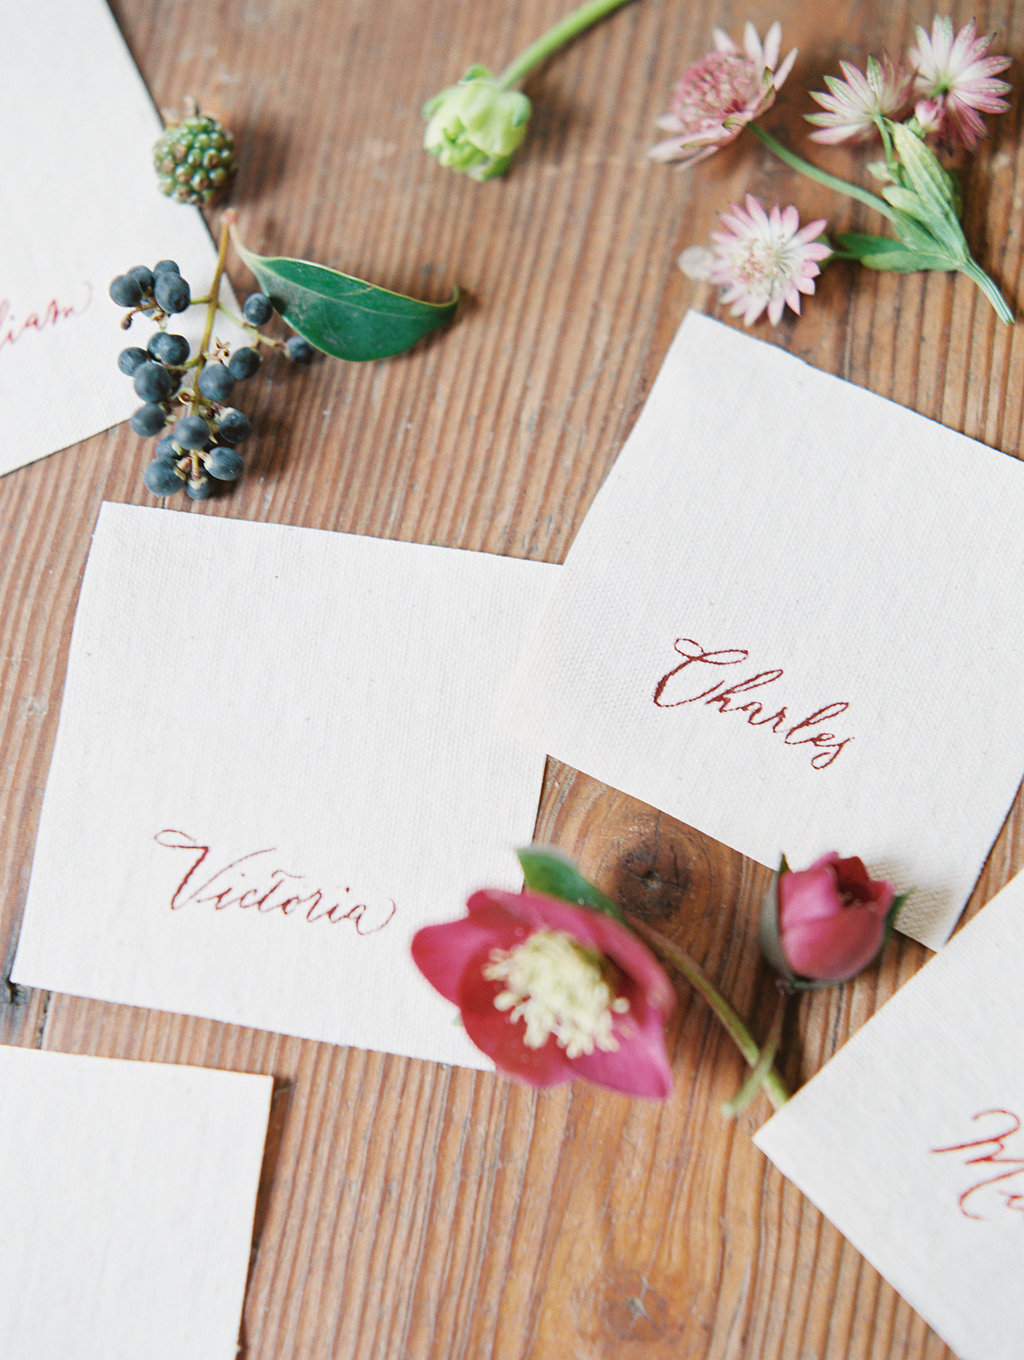 wavering-place-south-carolina-wedding-event-planner-jessica-rourke-375